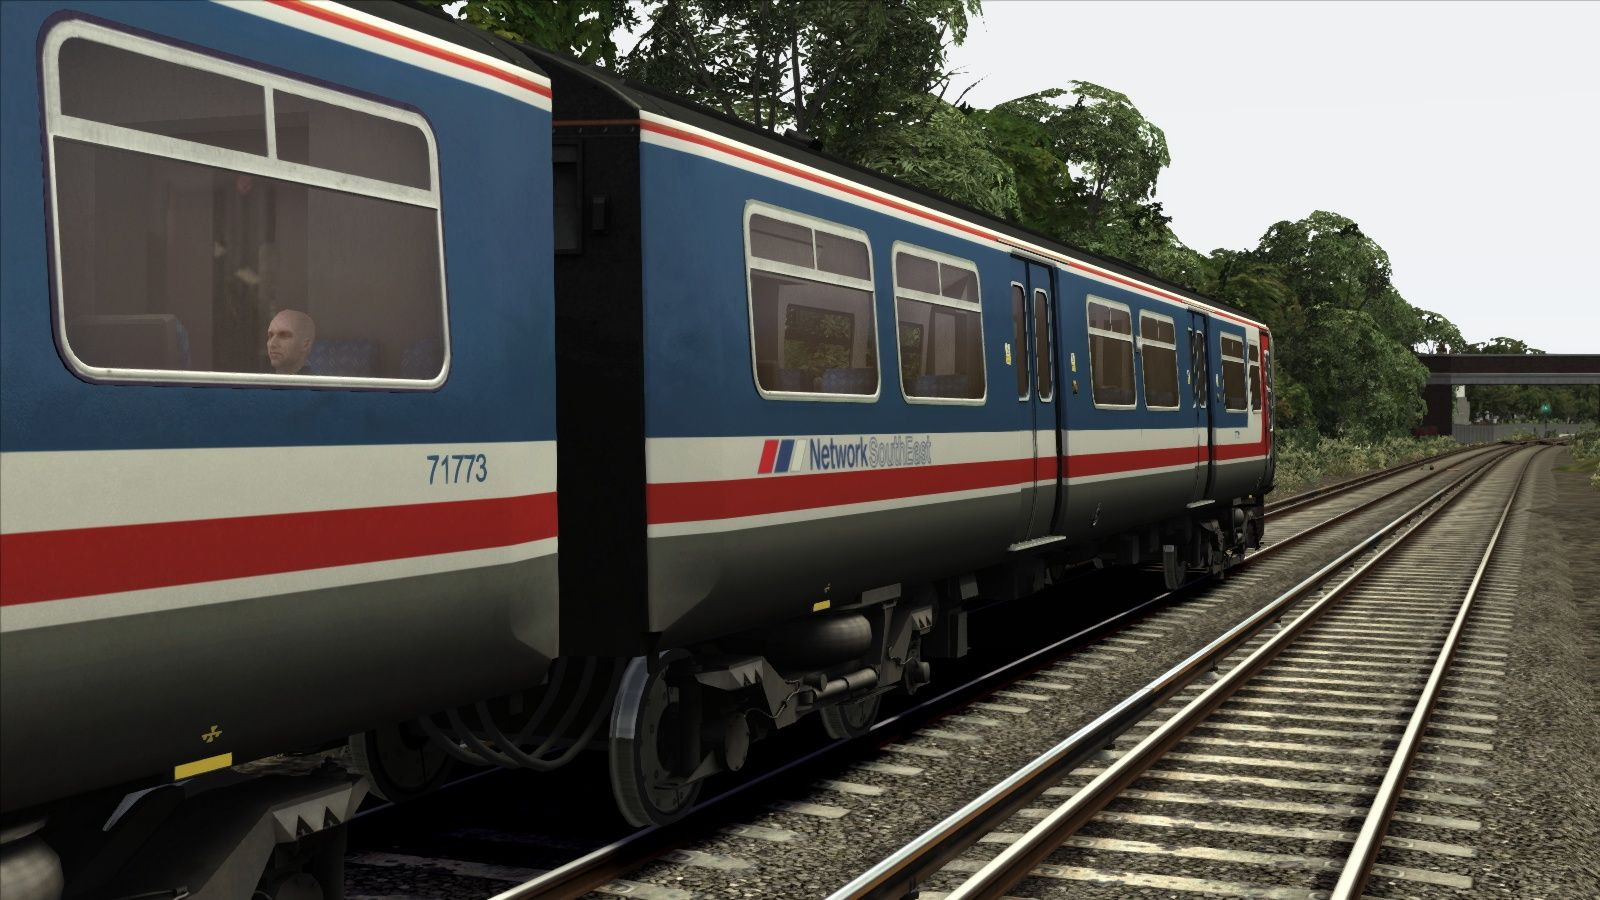 TS Marketplace: Network South East Class 319 Add-on Livery 2015 pc game Img-3